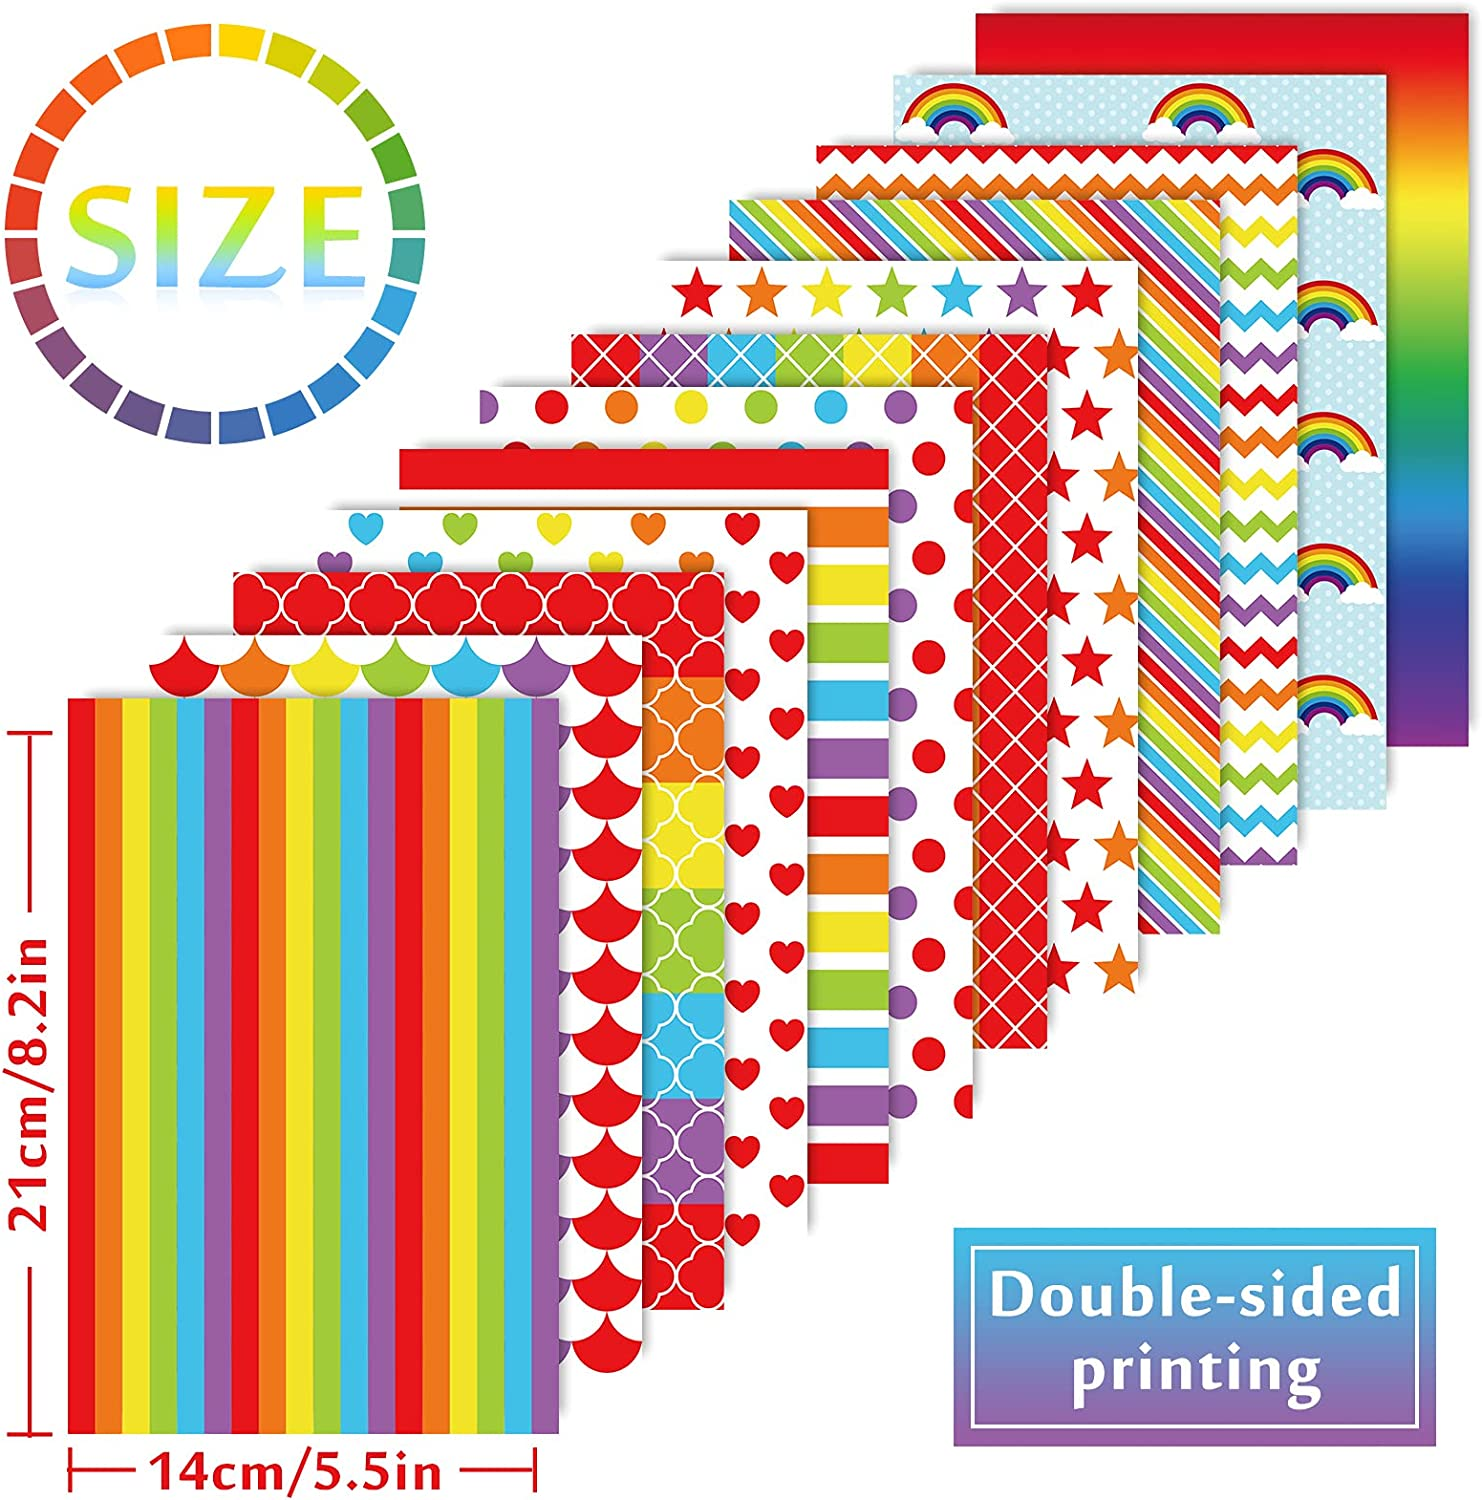 60 Sheet Whaline Rainbow Color Paper Set Colorful Heart Star Stripe Wave Pattern Craft Scrapbook Paper Double-Sided Origami Paper A5 Size Decorative Paper for Gay Pride Card Die Cuts Making